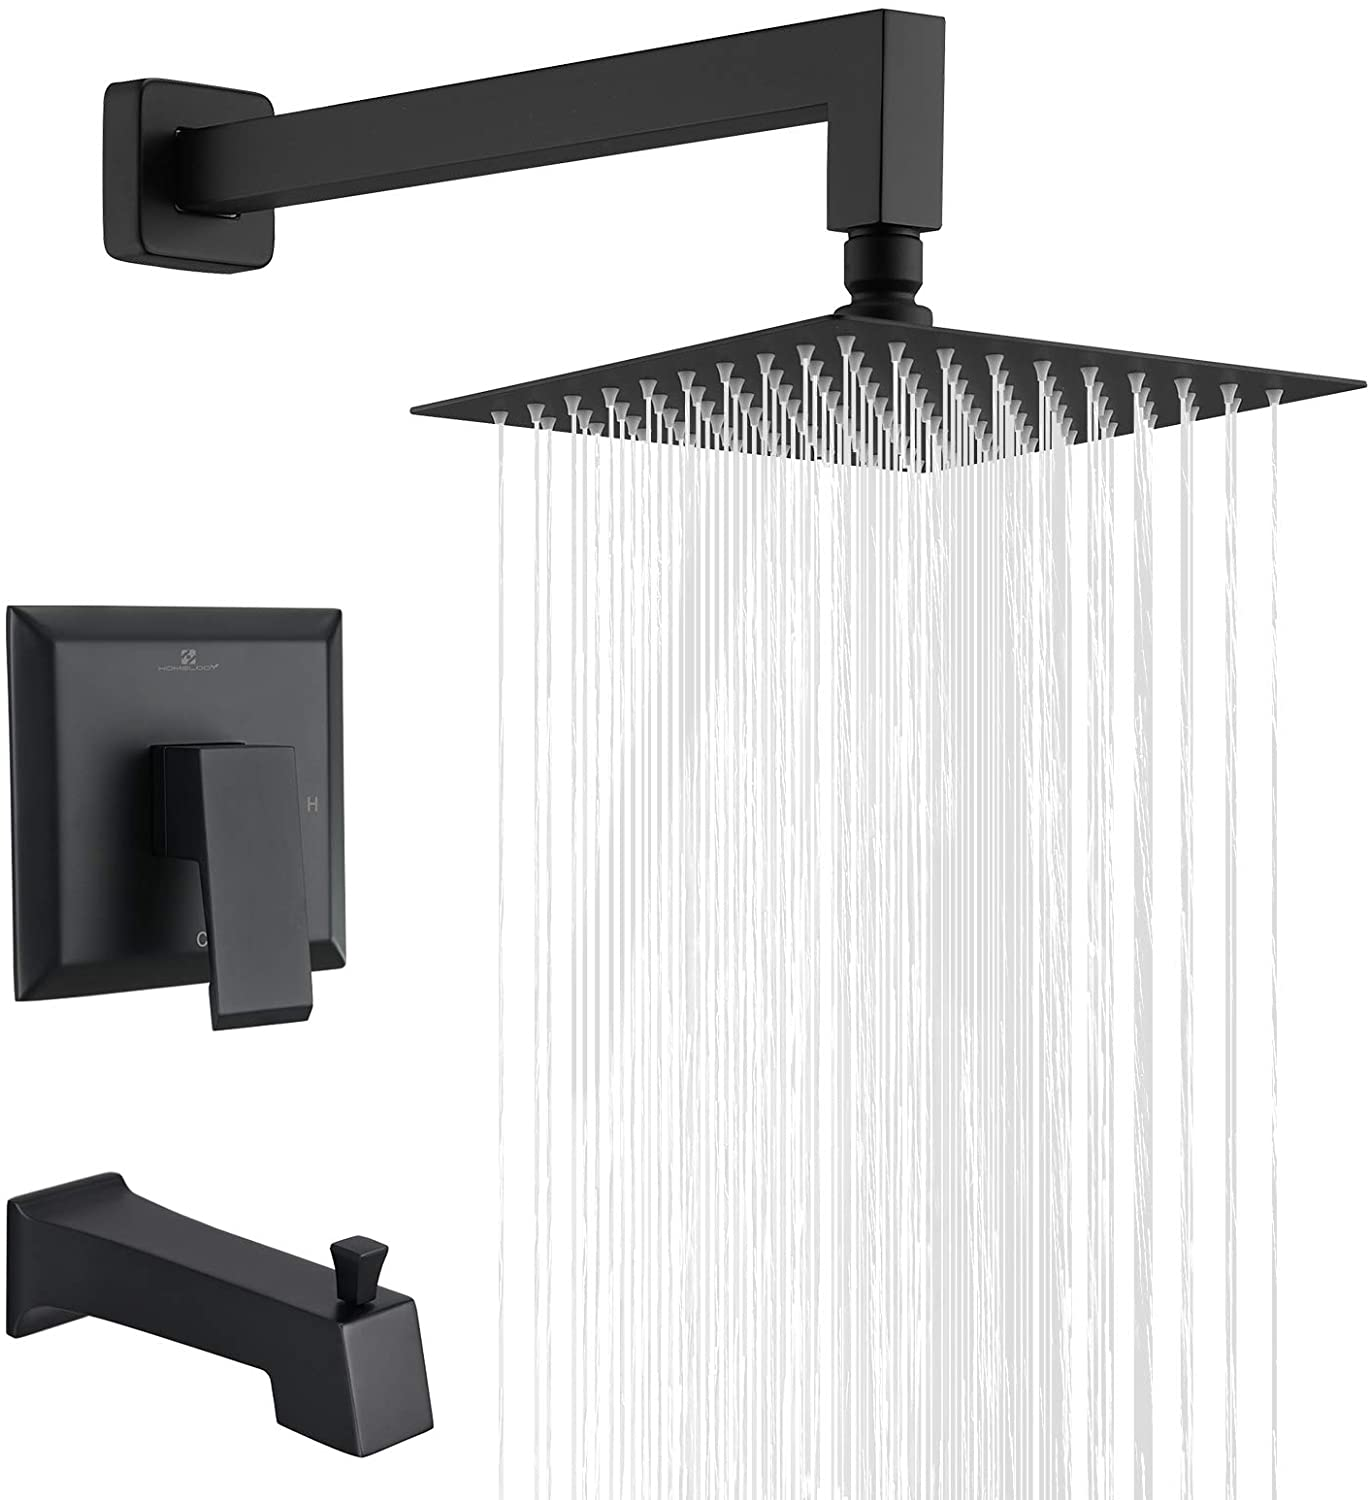 Single-Handle Tub and Shower Trim Kit ESNBIA Shower Tub Kit, Tub and Shower Faucet Set(Valve Included with 5-Setting Handheld Shower Head and Tub Spout Matte Black